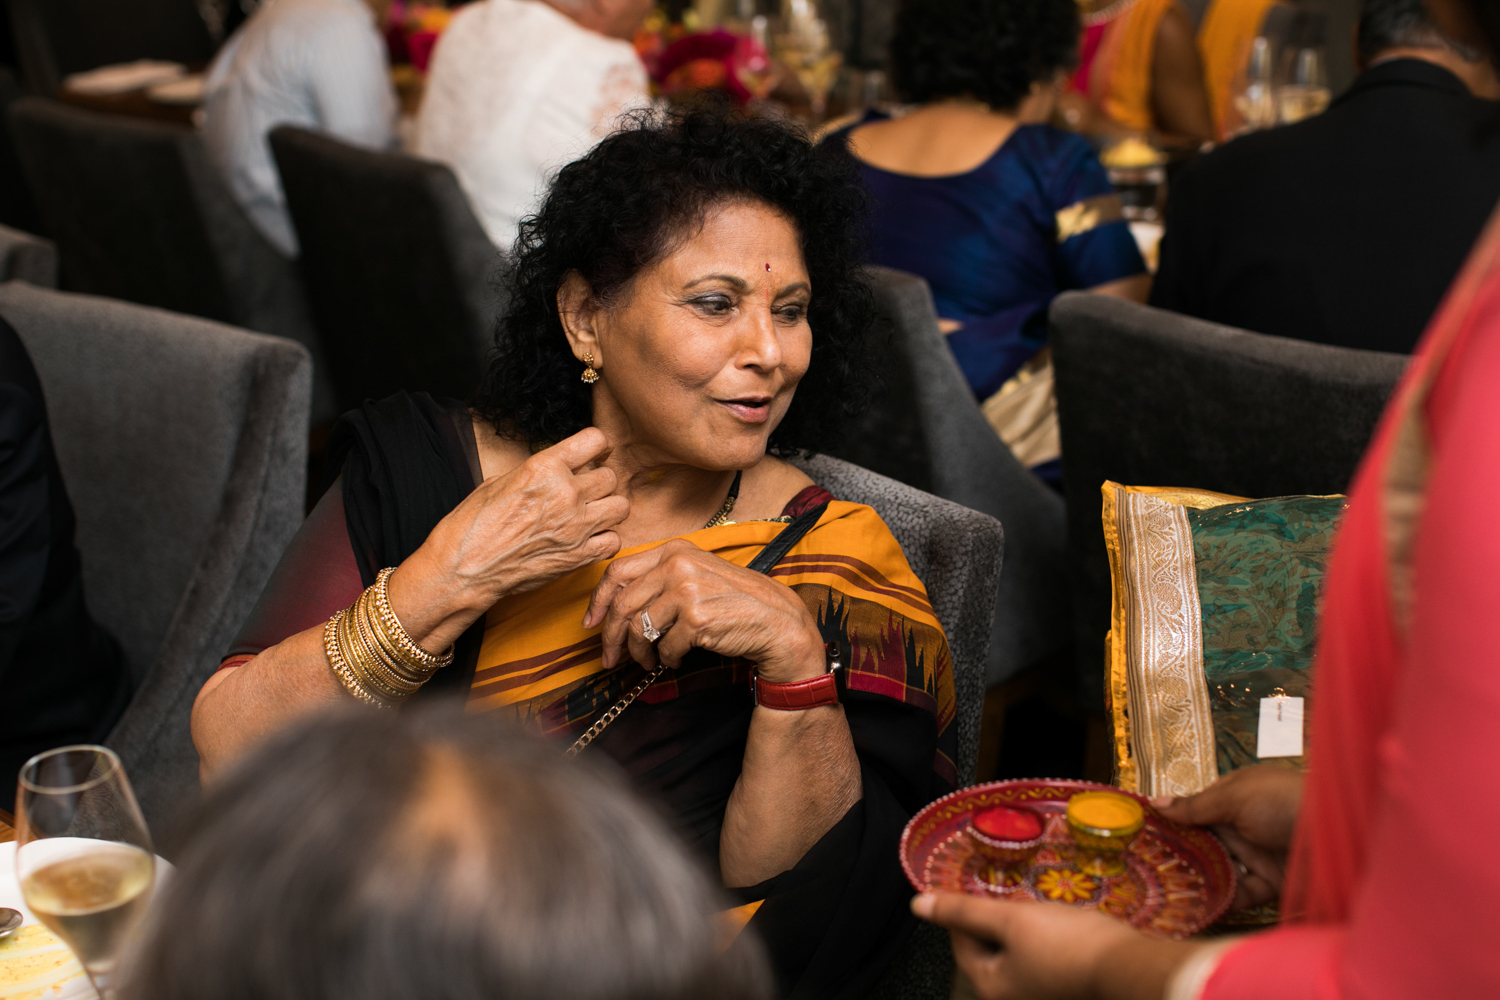 Offering Turmeric and Vermillion powders to ladies at a wedding reception.